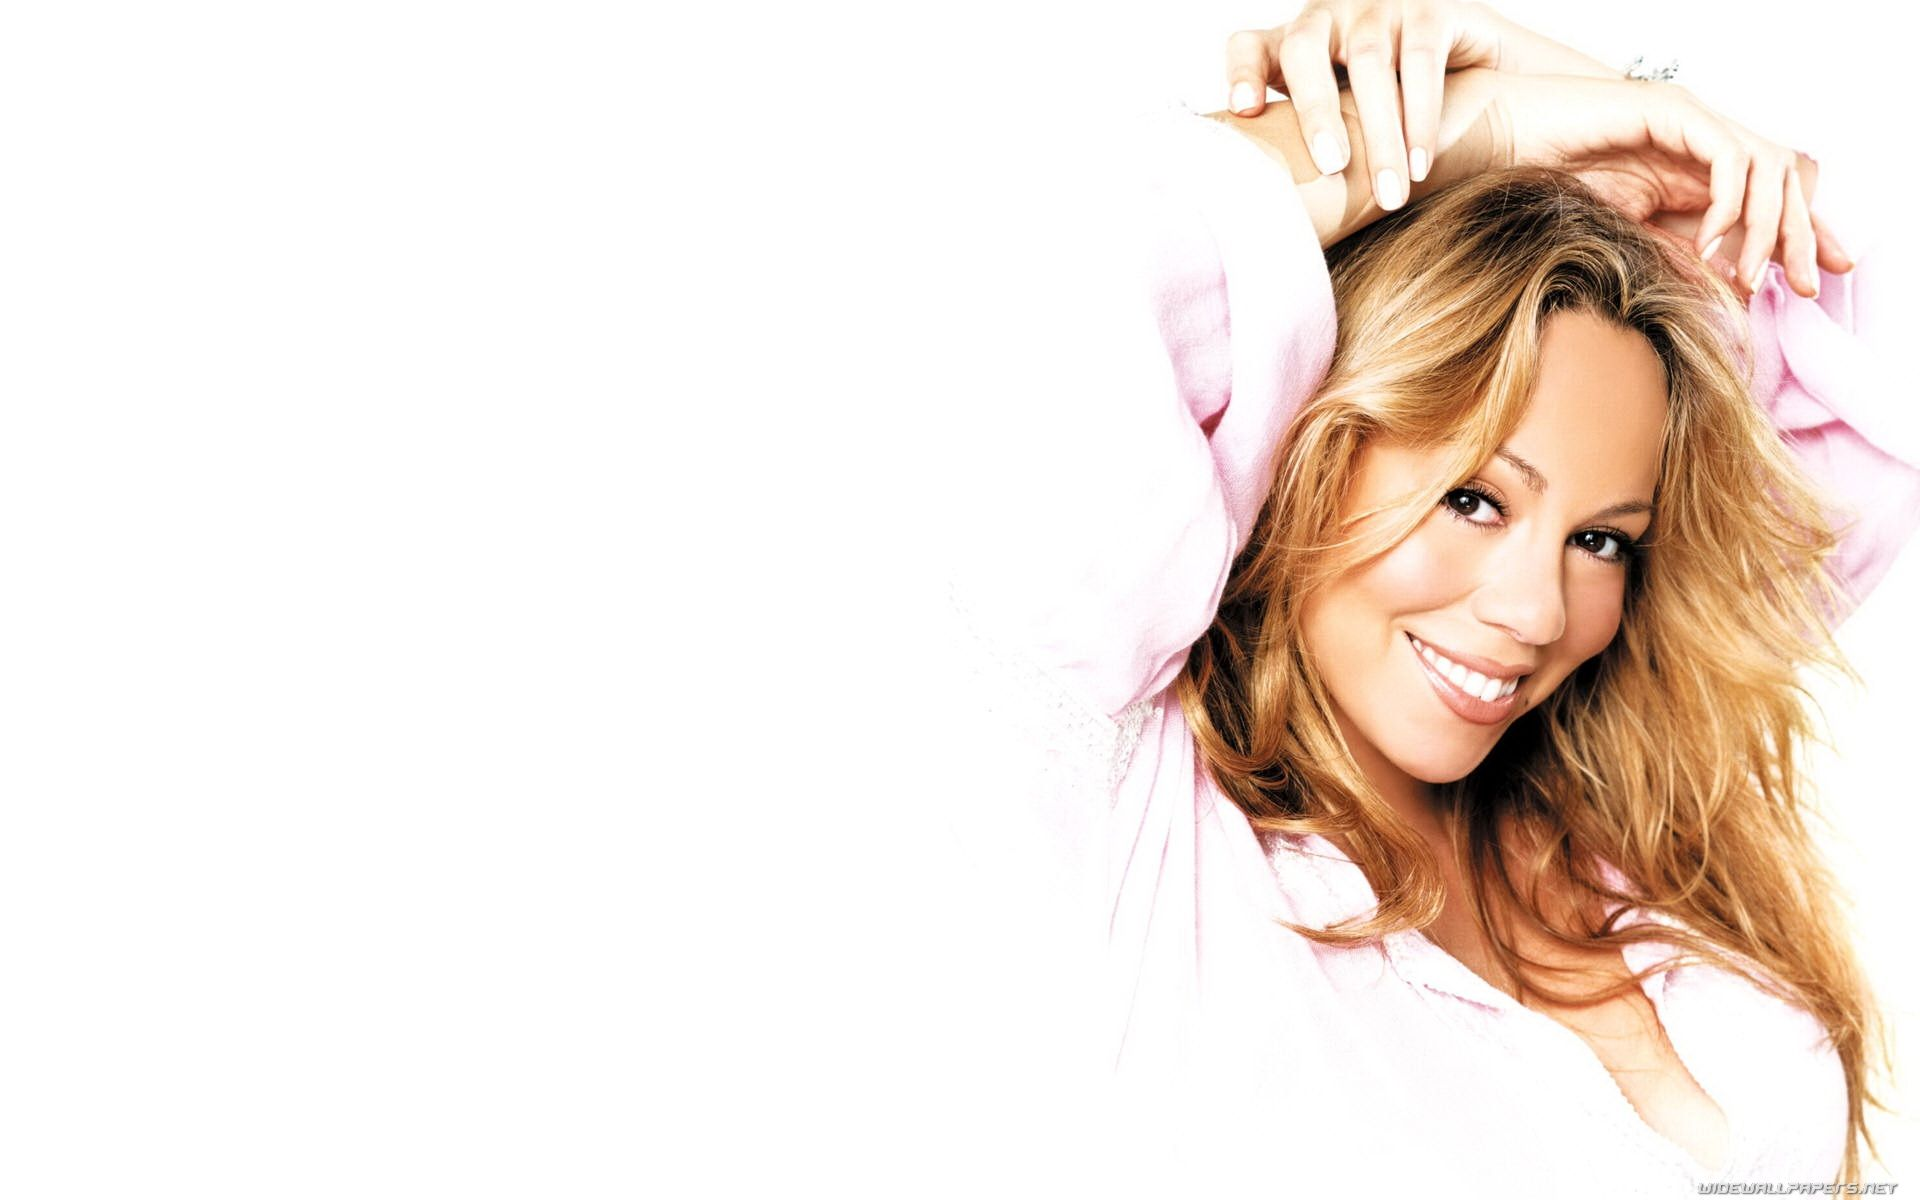 Pin De Amb Wallpapers Em Mariah Carey Mariah Carey B Pop Cantores